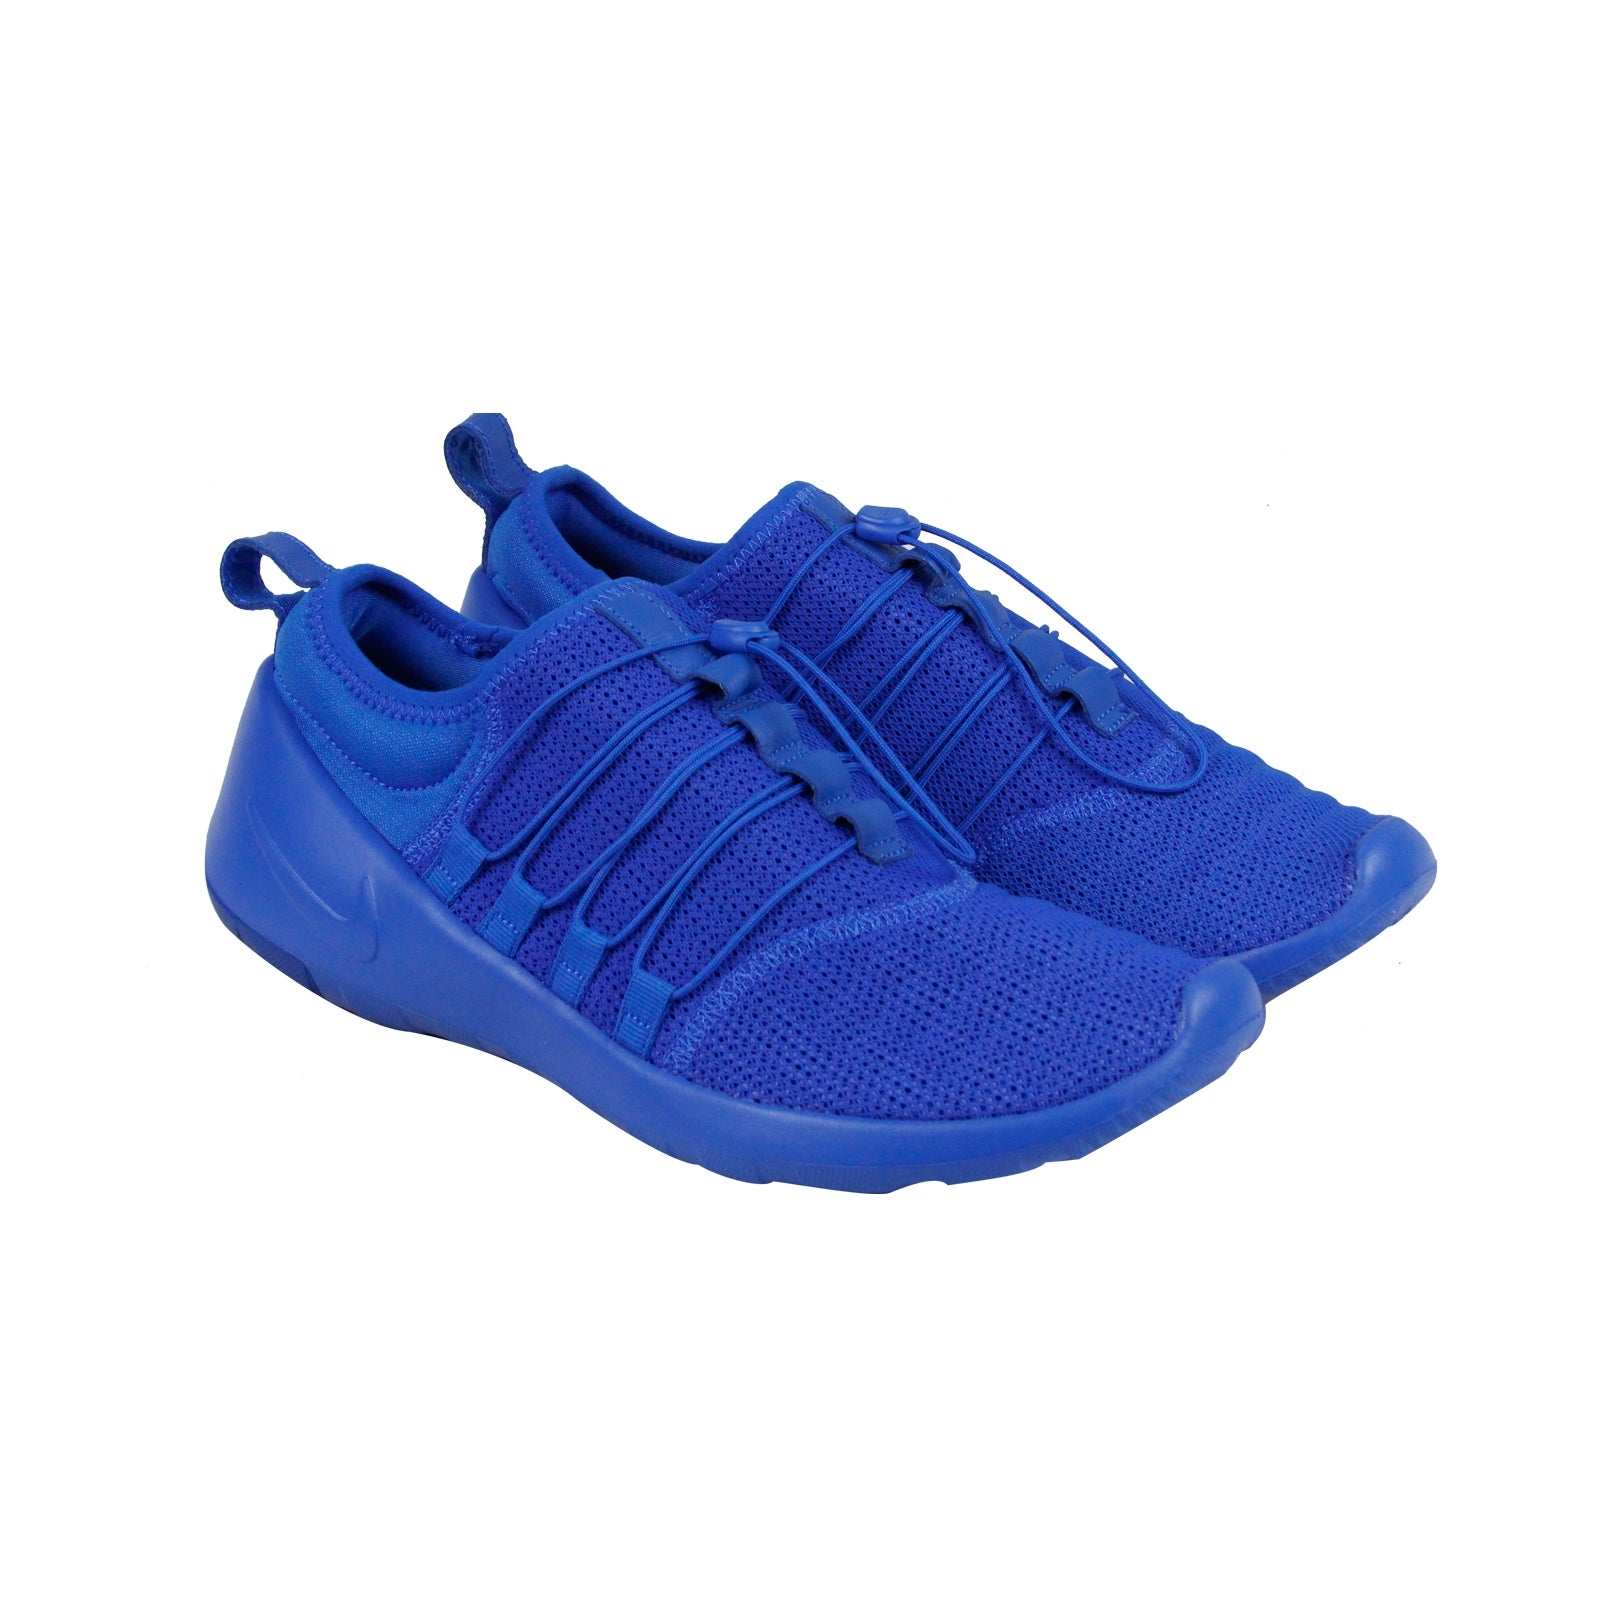 pretty nice 42cc3 7bd25 Shop Nike Payaa Qs Mens Blue Mesh Athletic Lace Up Running Shoes - Free  Shipping Today - Overstock - 17878201